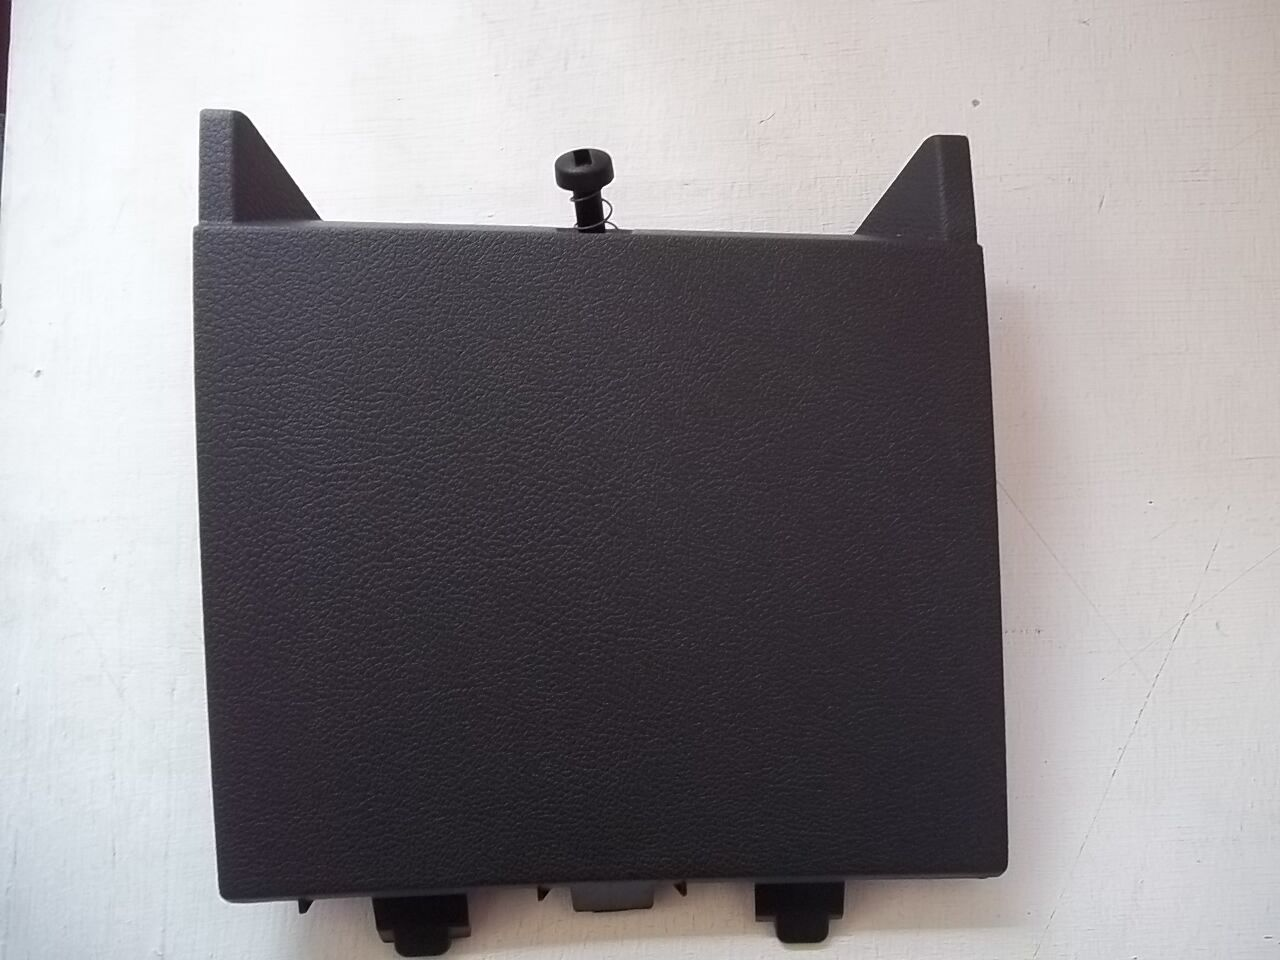 Volkswagen Vw T5 Transporter Interior Fuse Box Cover Dark Brand T4 For Sale 1 Of 2free Shipping